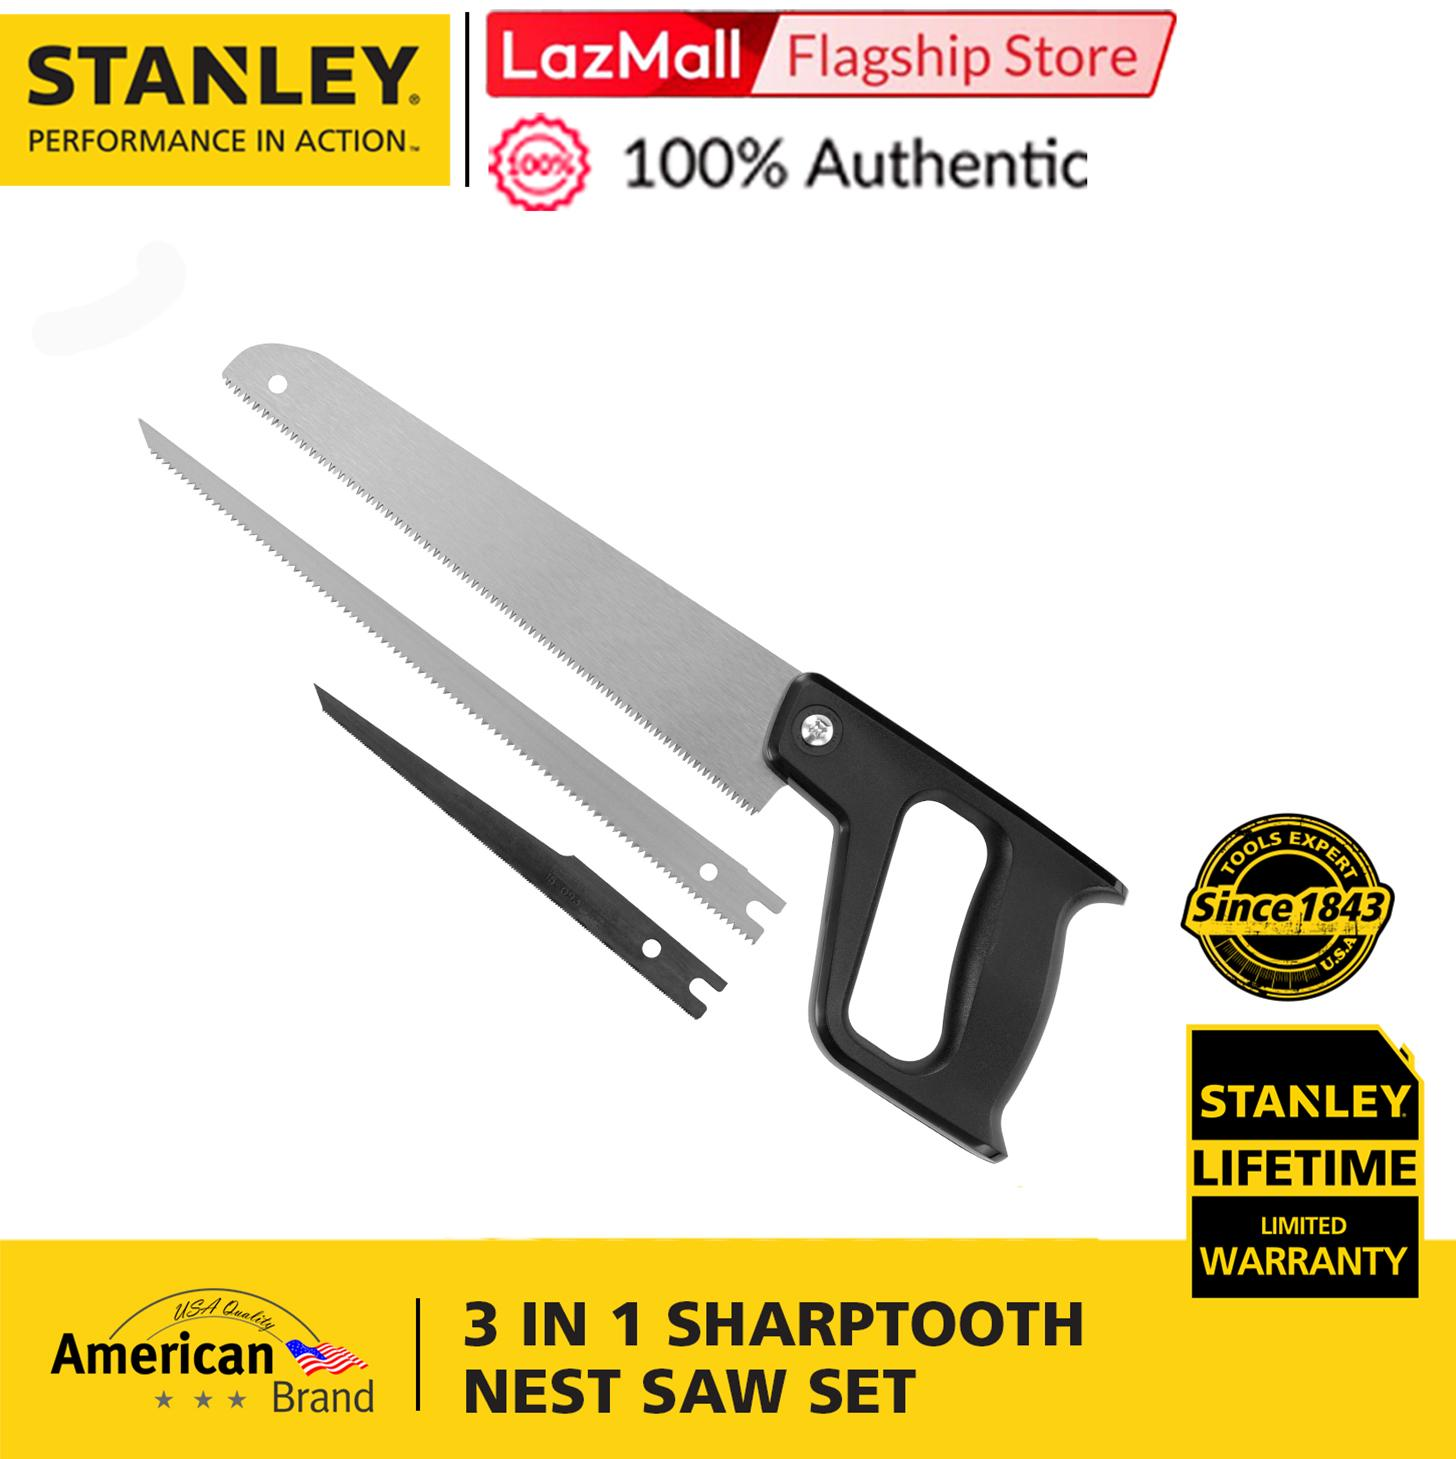 Stanley 15-090 Saw Set 3 in 1 Sharptooth Nest (Black/Steel)